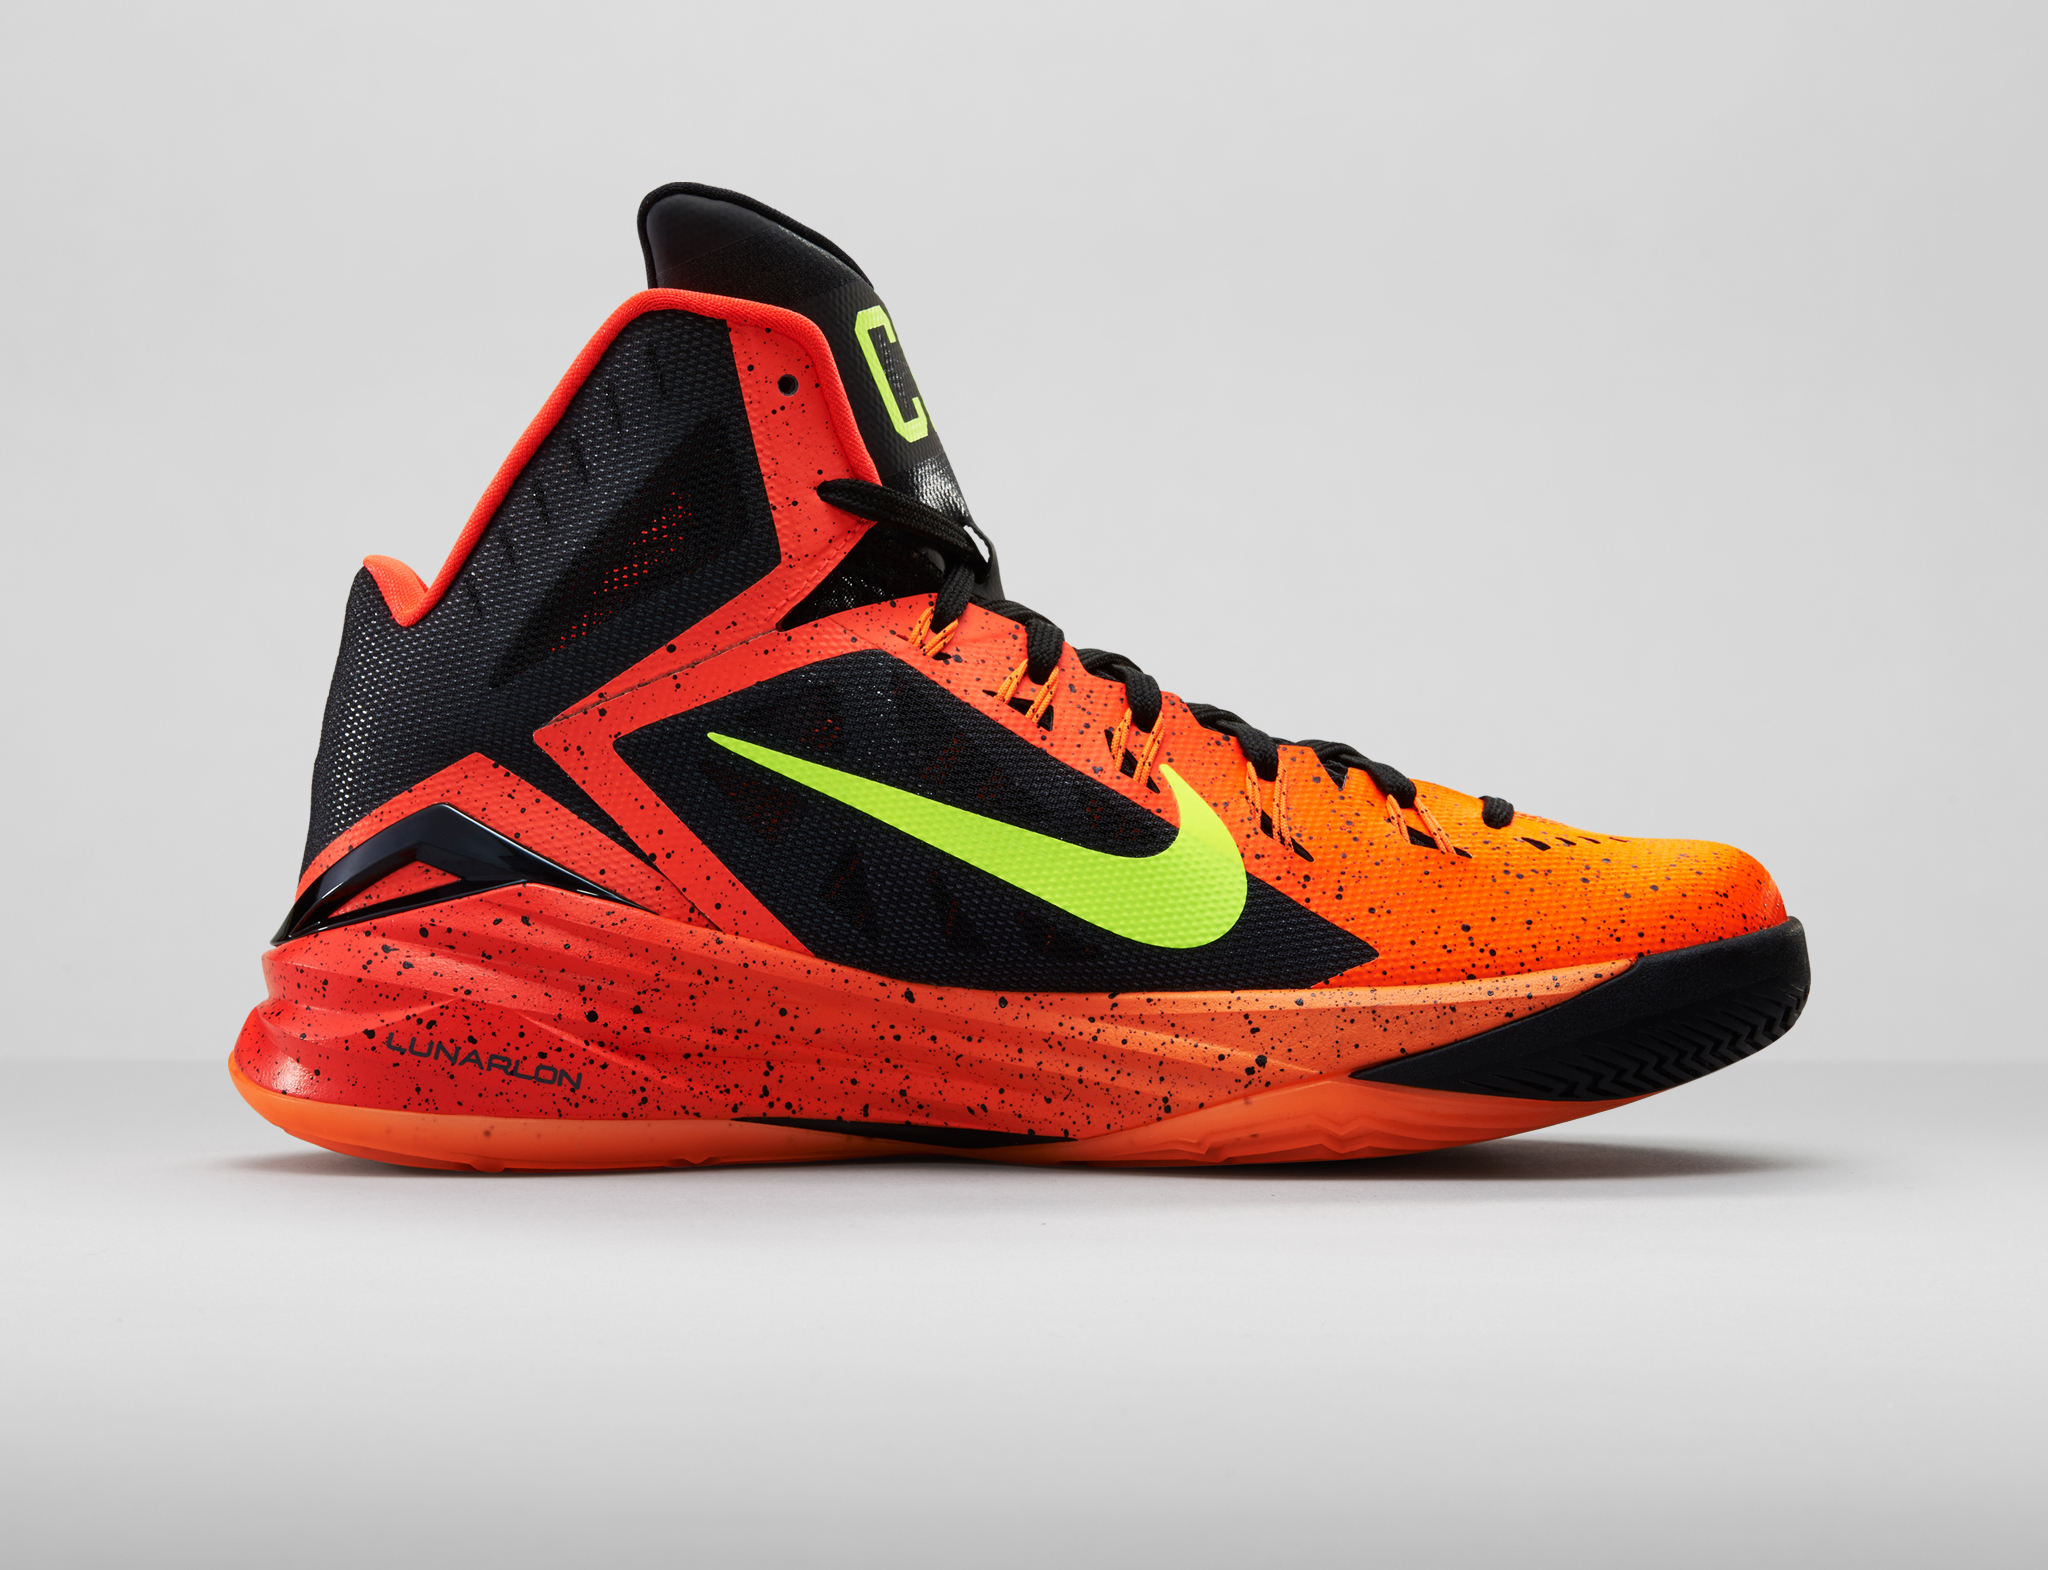 hyperdunk new nike shoes 2018 images for facebook 935584